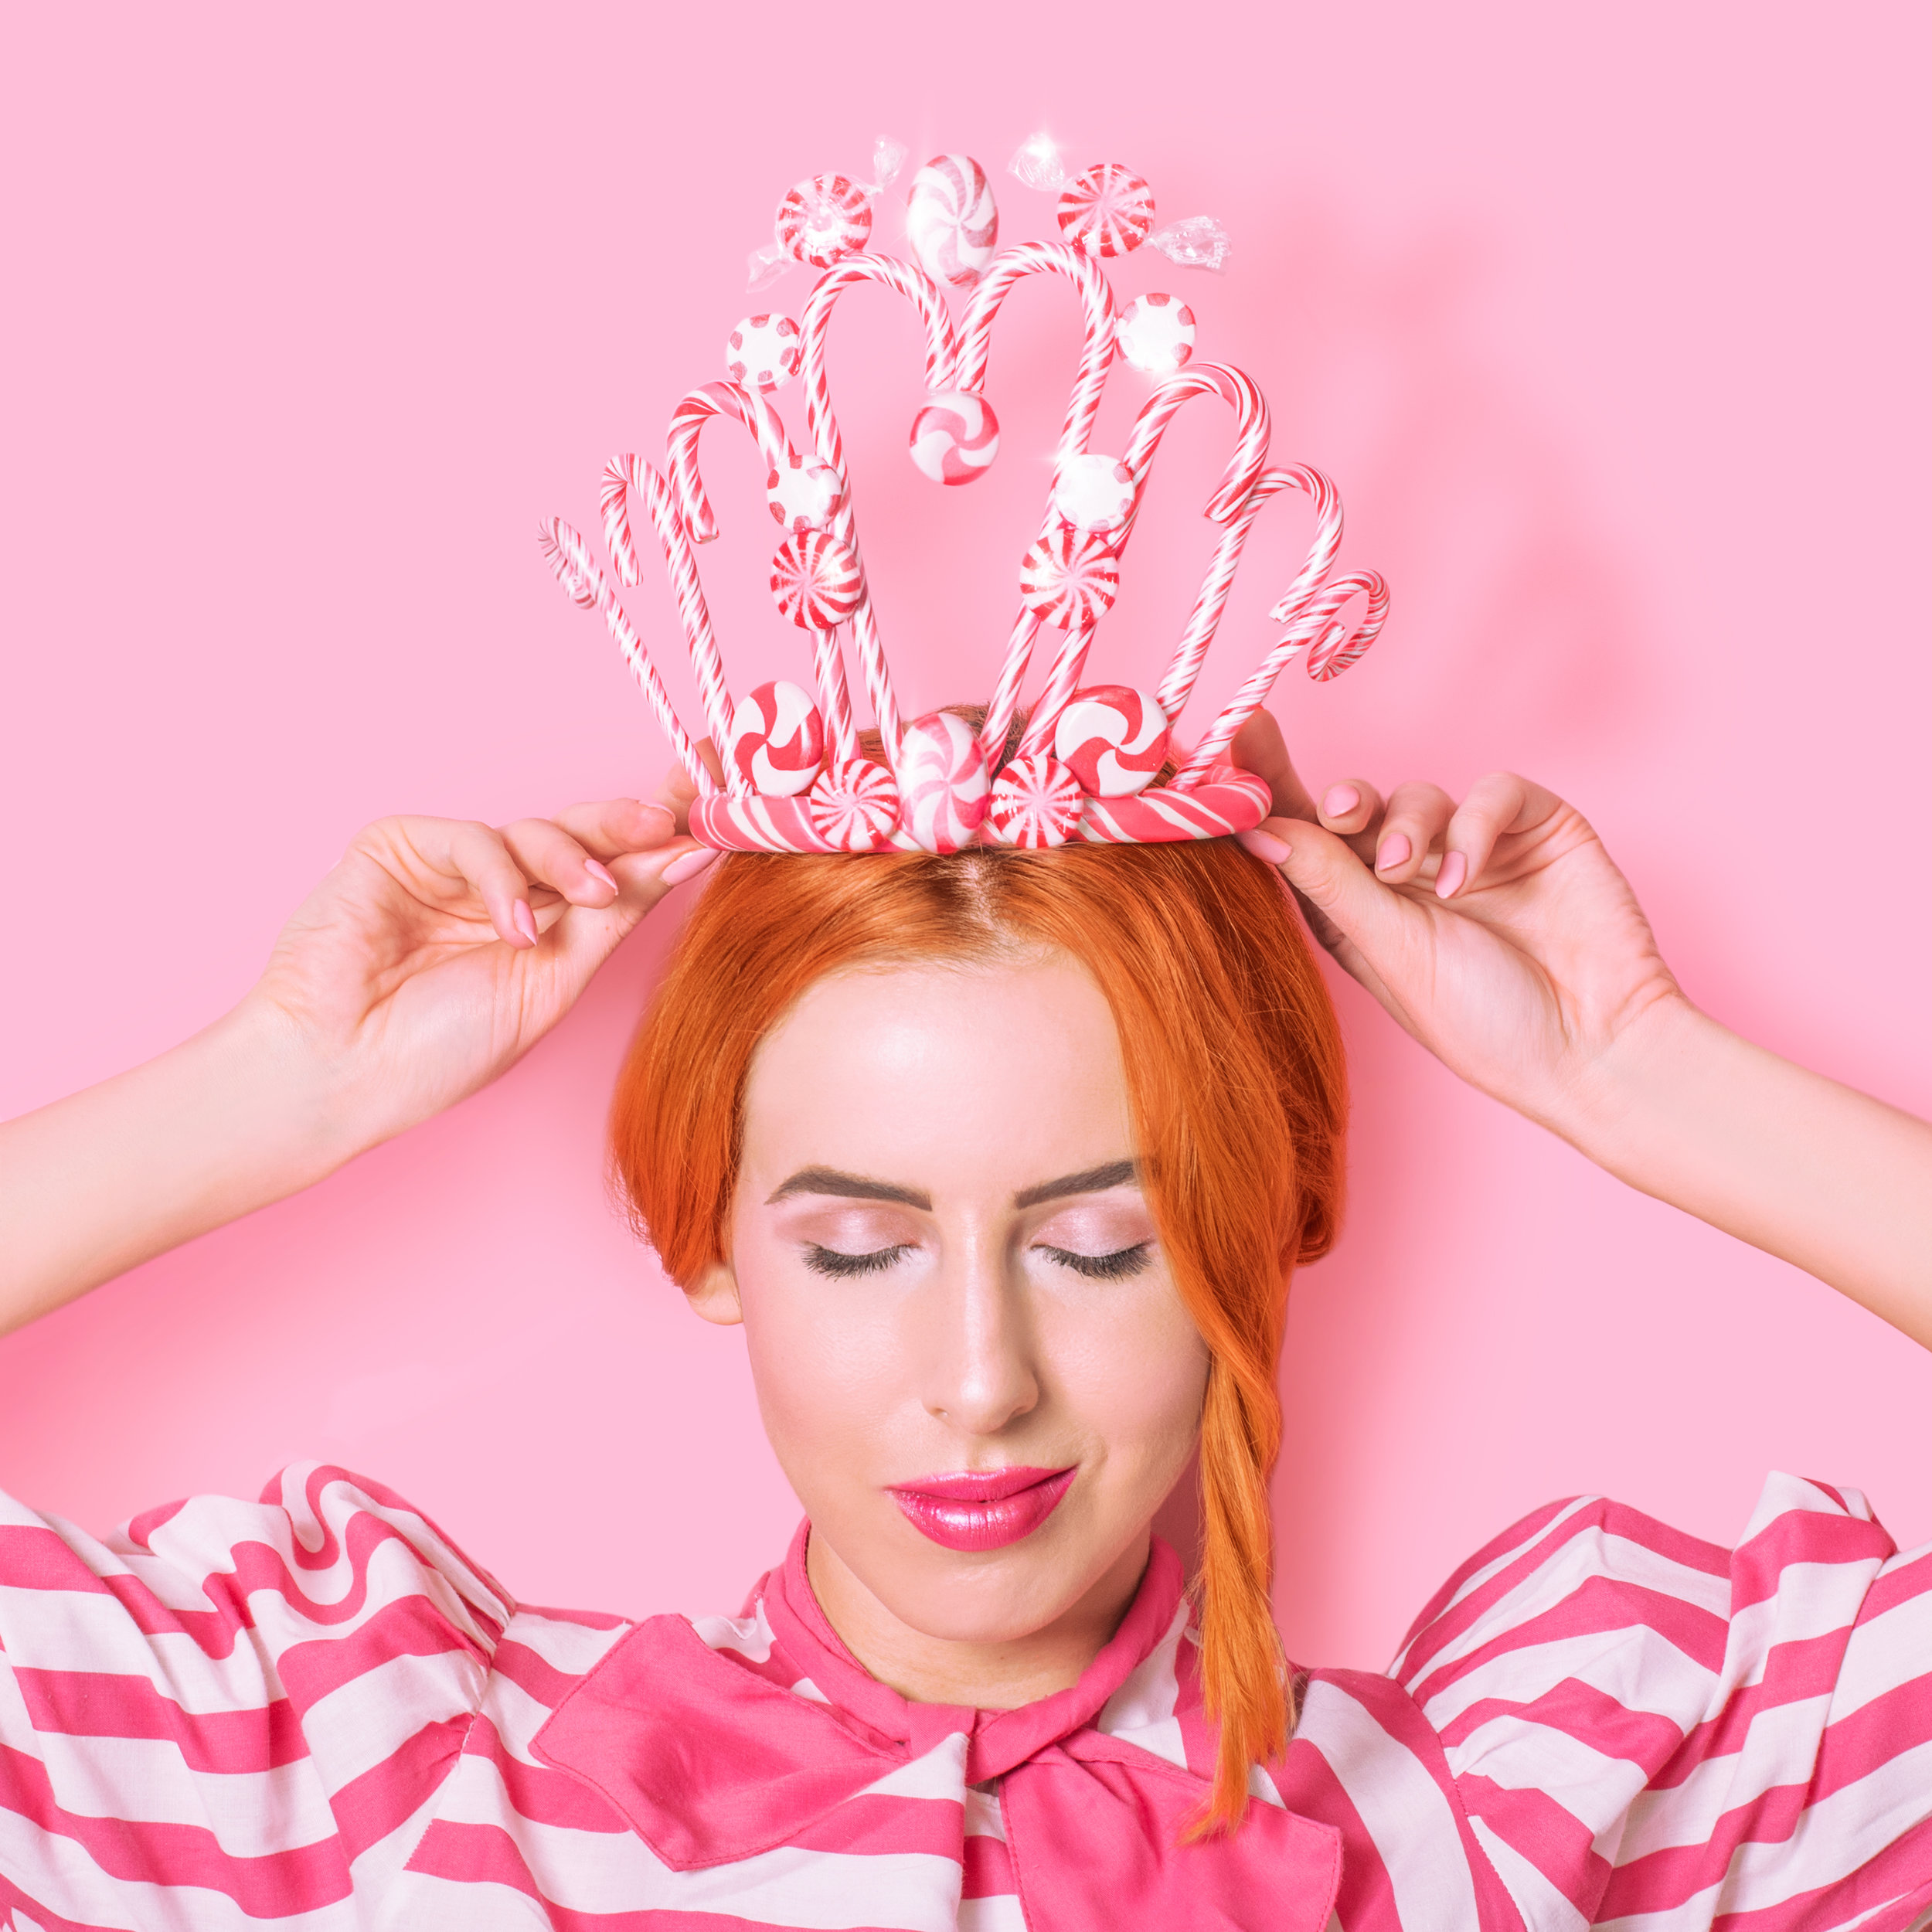 benefit-holiday-candy-cane-crown-02.jpg